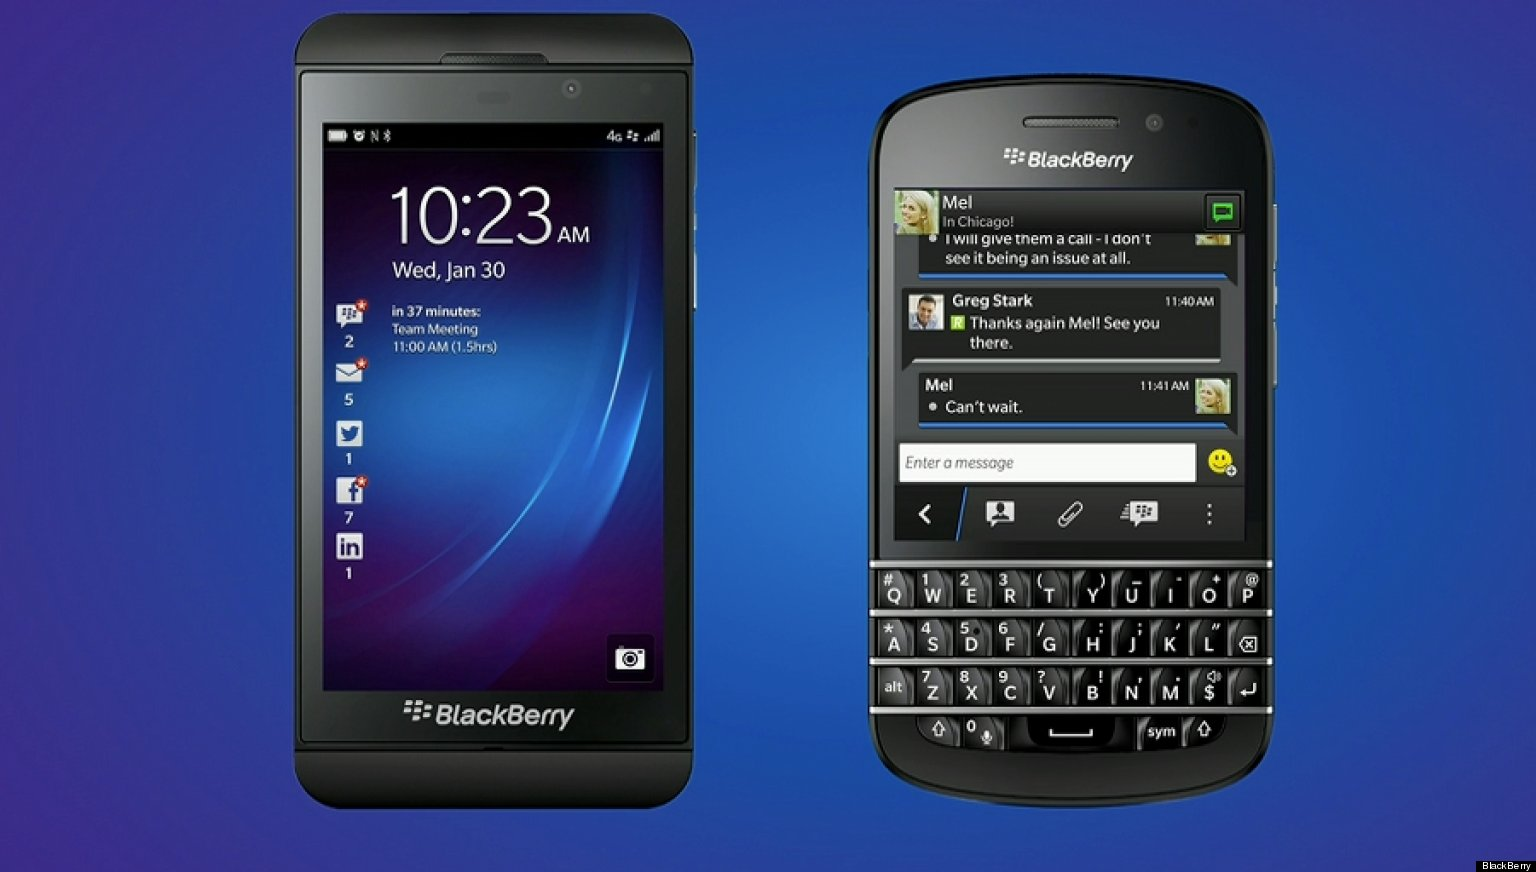 Any new BlackBerry 10 devices to be released soon?